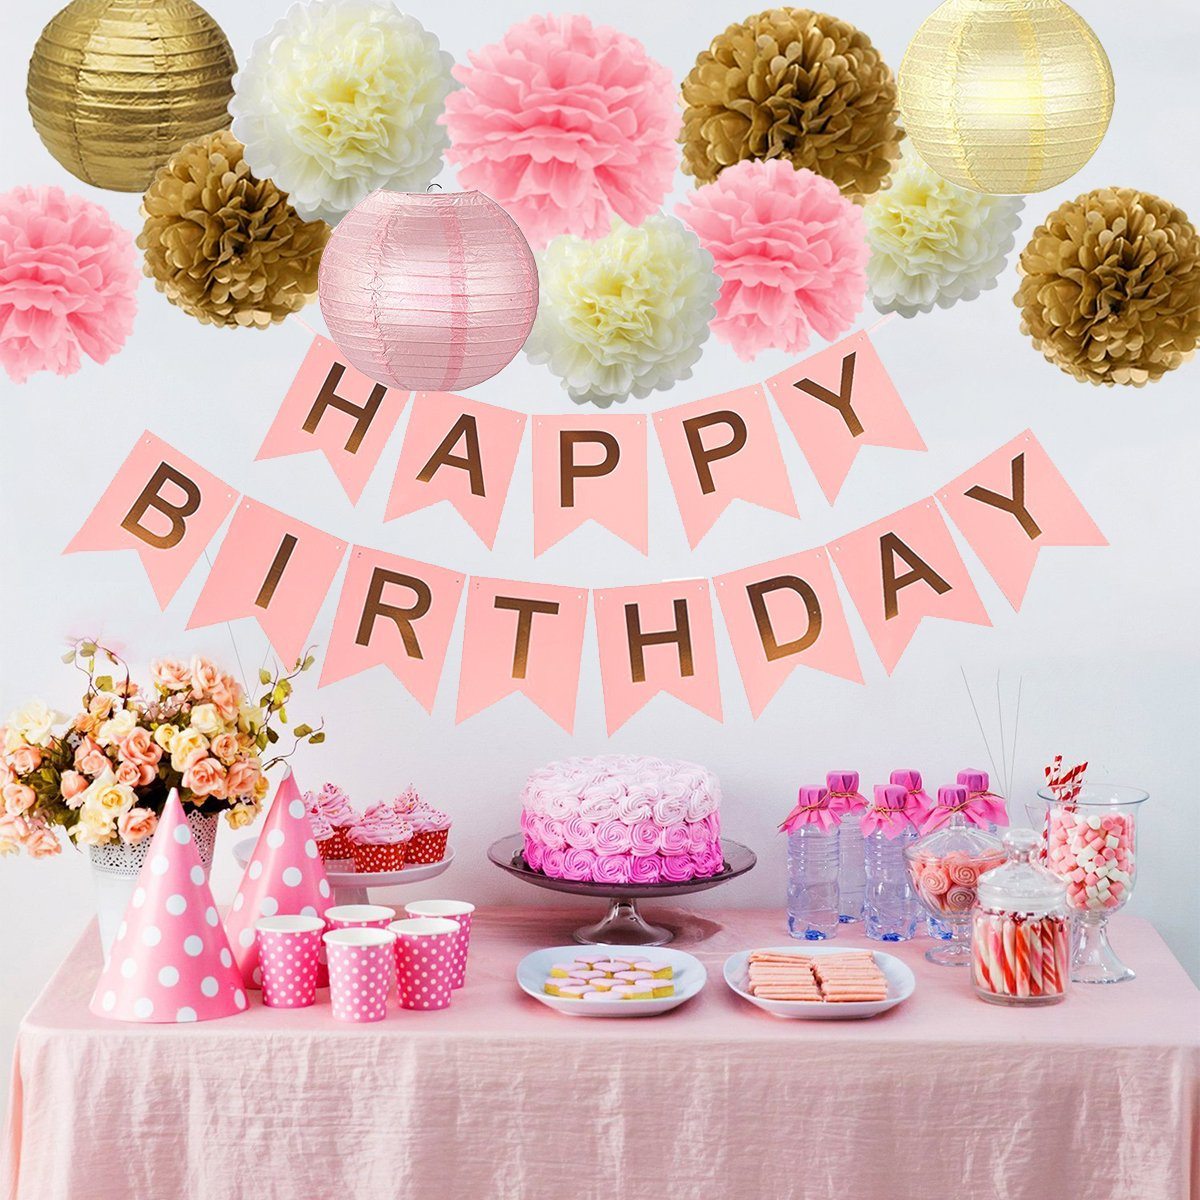 29PCs of Pink Gold and Cream Birthday Party Decorations Set Pom Pom Lanterns Polka Dot Triangle Garland Banner First 1st Birthday Girl Princess Theme Decorations Kit Party Supplies Backdrop Lillypet